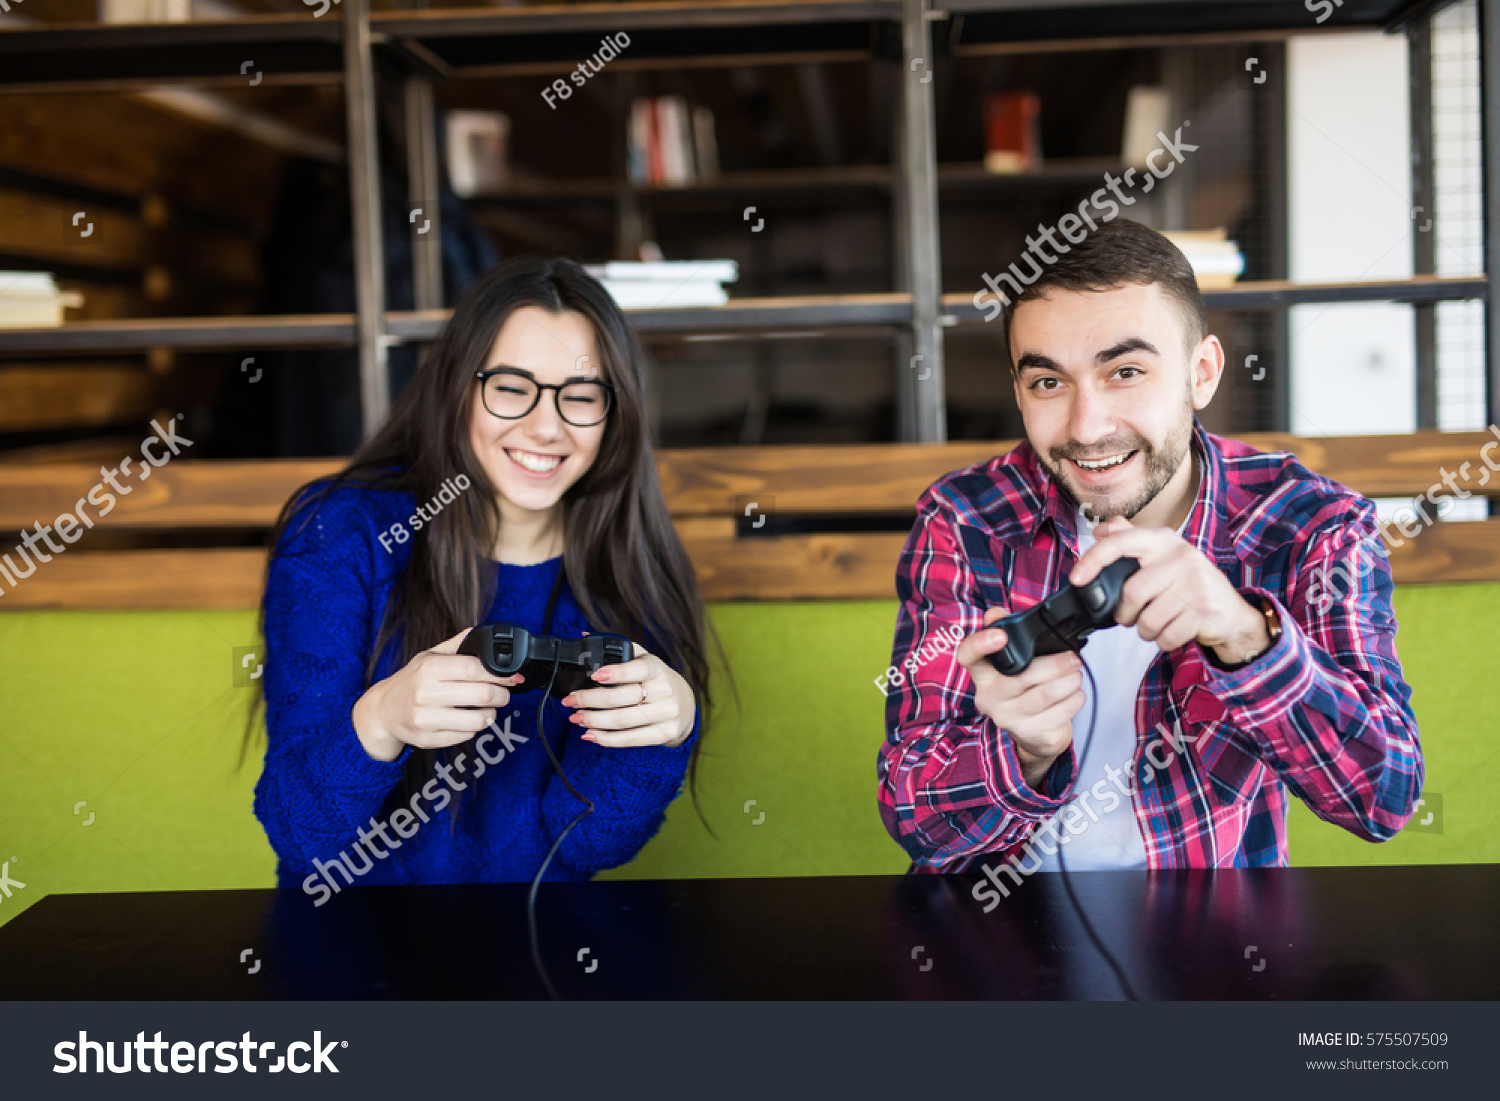 Cute Couple Playing Video Games Stock Photo Edit Now 575507509